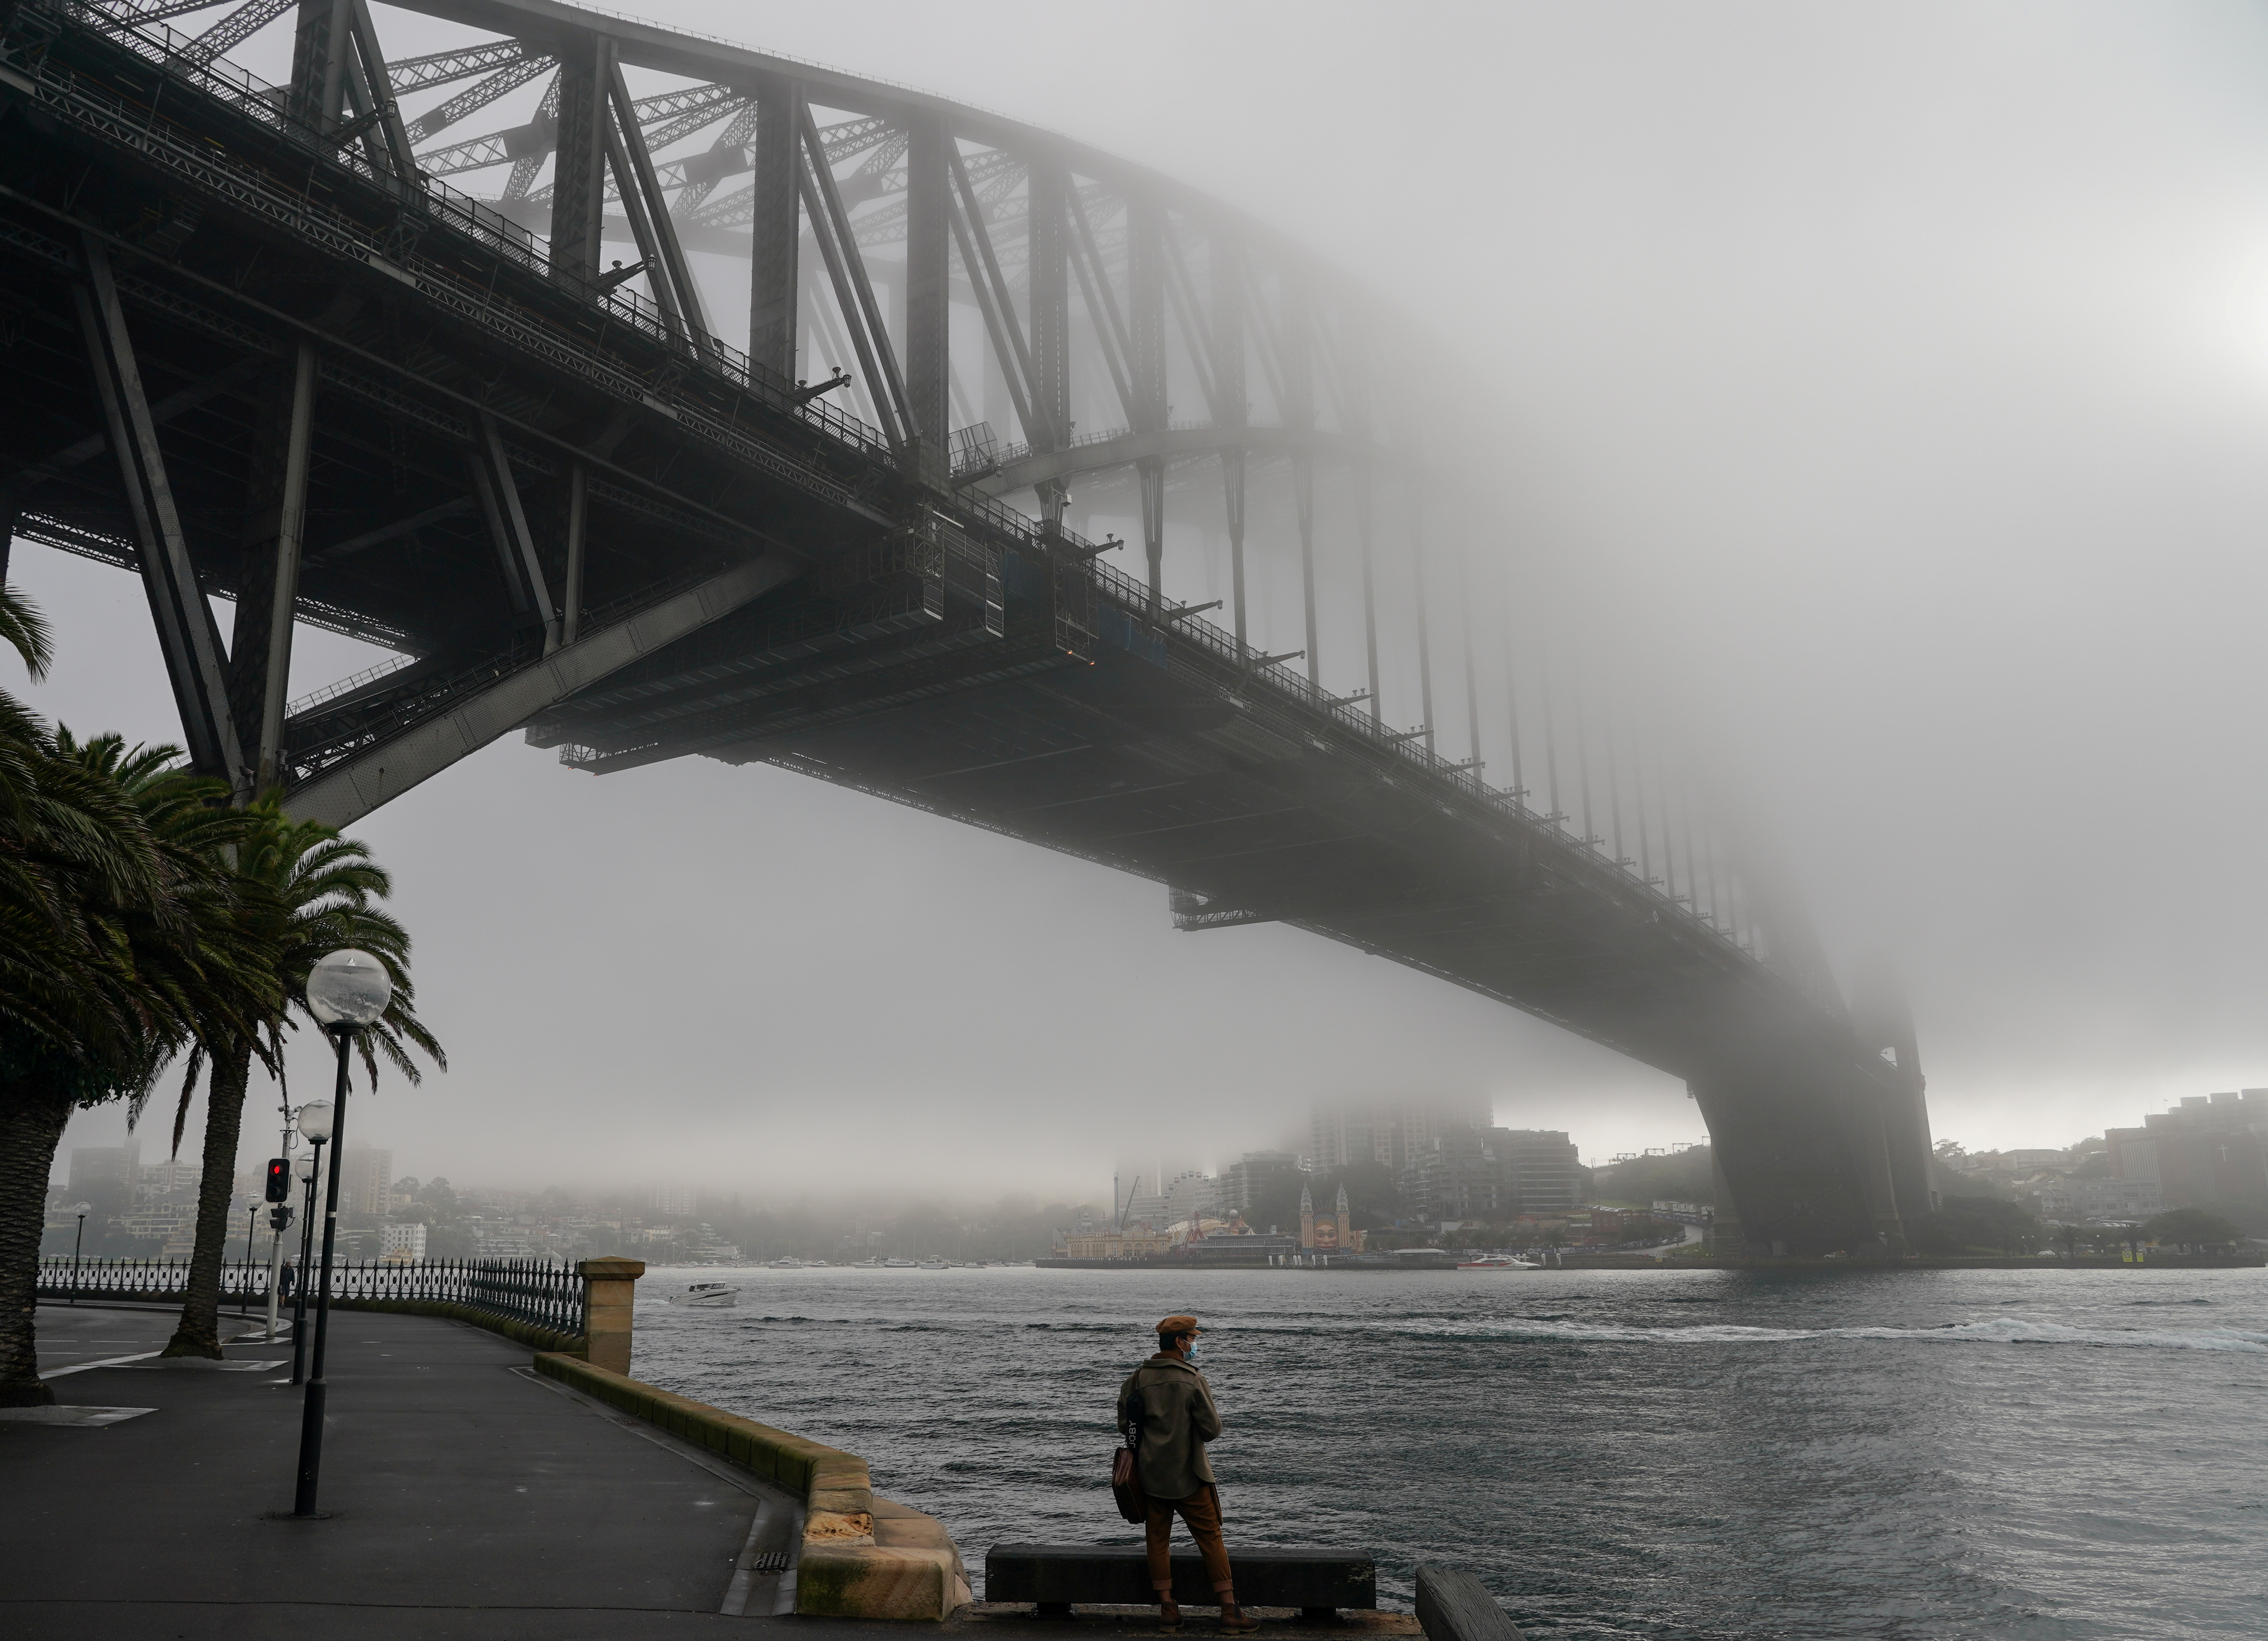 A man wearing a protective face mask takes in the waterfront view underneath the Sydney Harbour Bridge, seen shrouded in fog, during a lockdown to curb the spread of a coronavirus disease (COVID-19) outbreak in Sydney, Australia, June 30, 2021. REUTERS/Loren Elliott